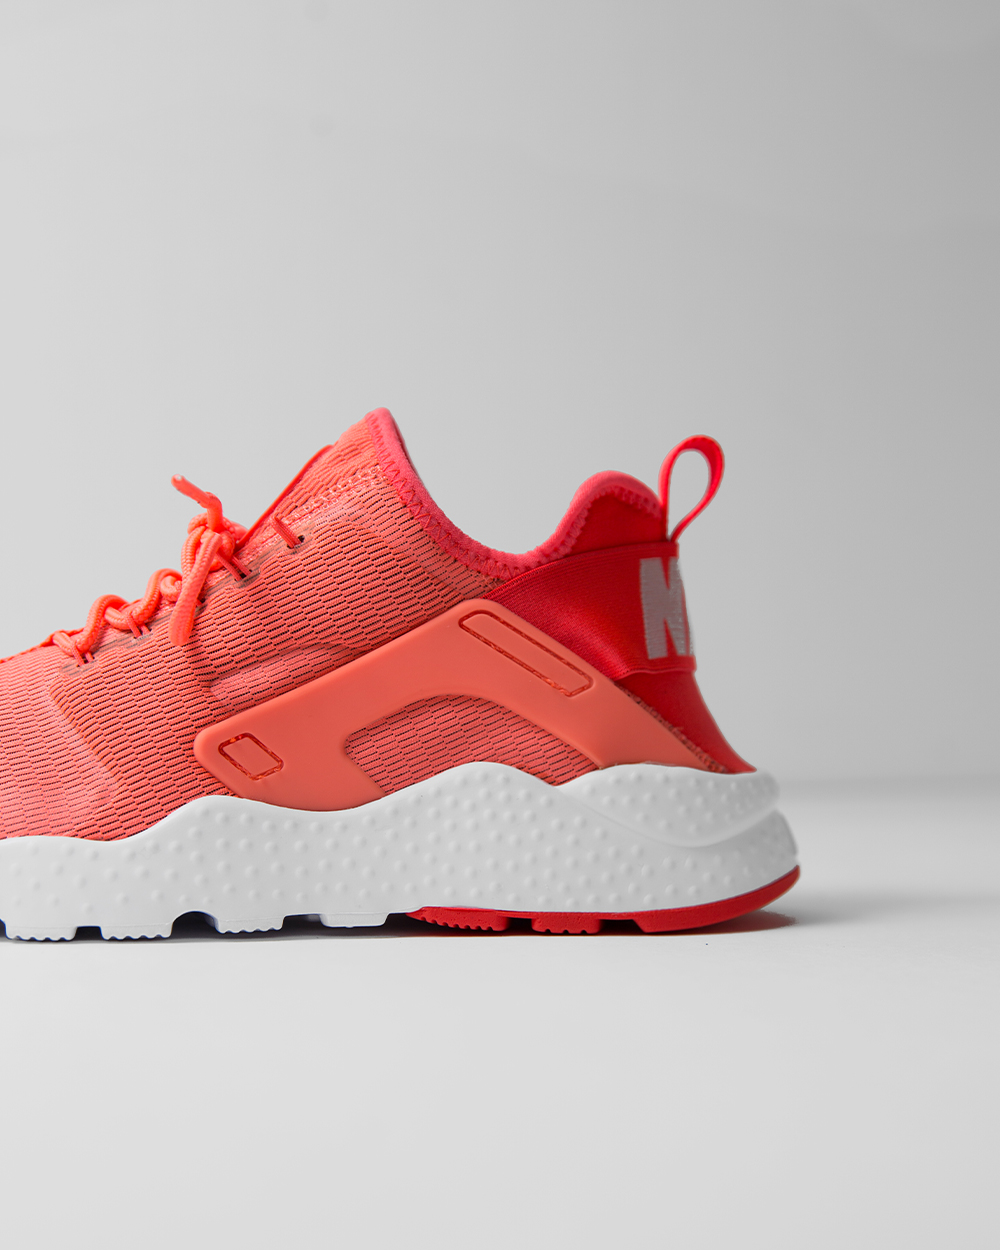 8a770f767c5 Less Is More: The Nike Air Huarache Ultra - size? blog